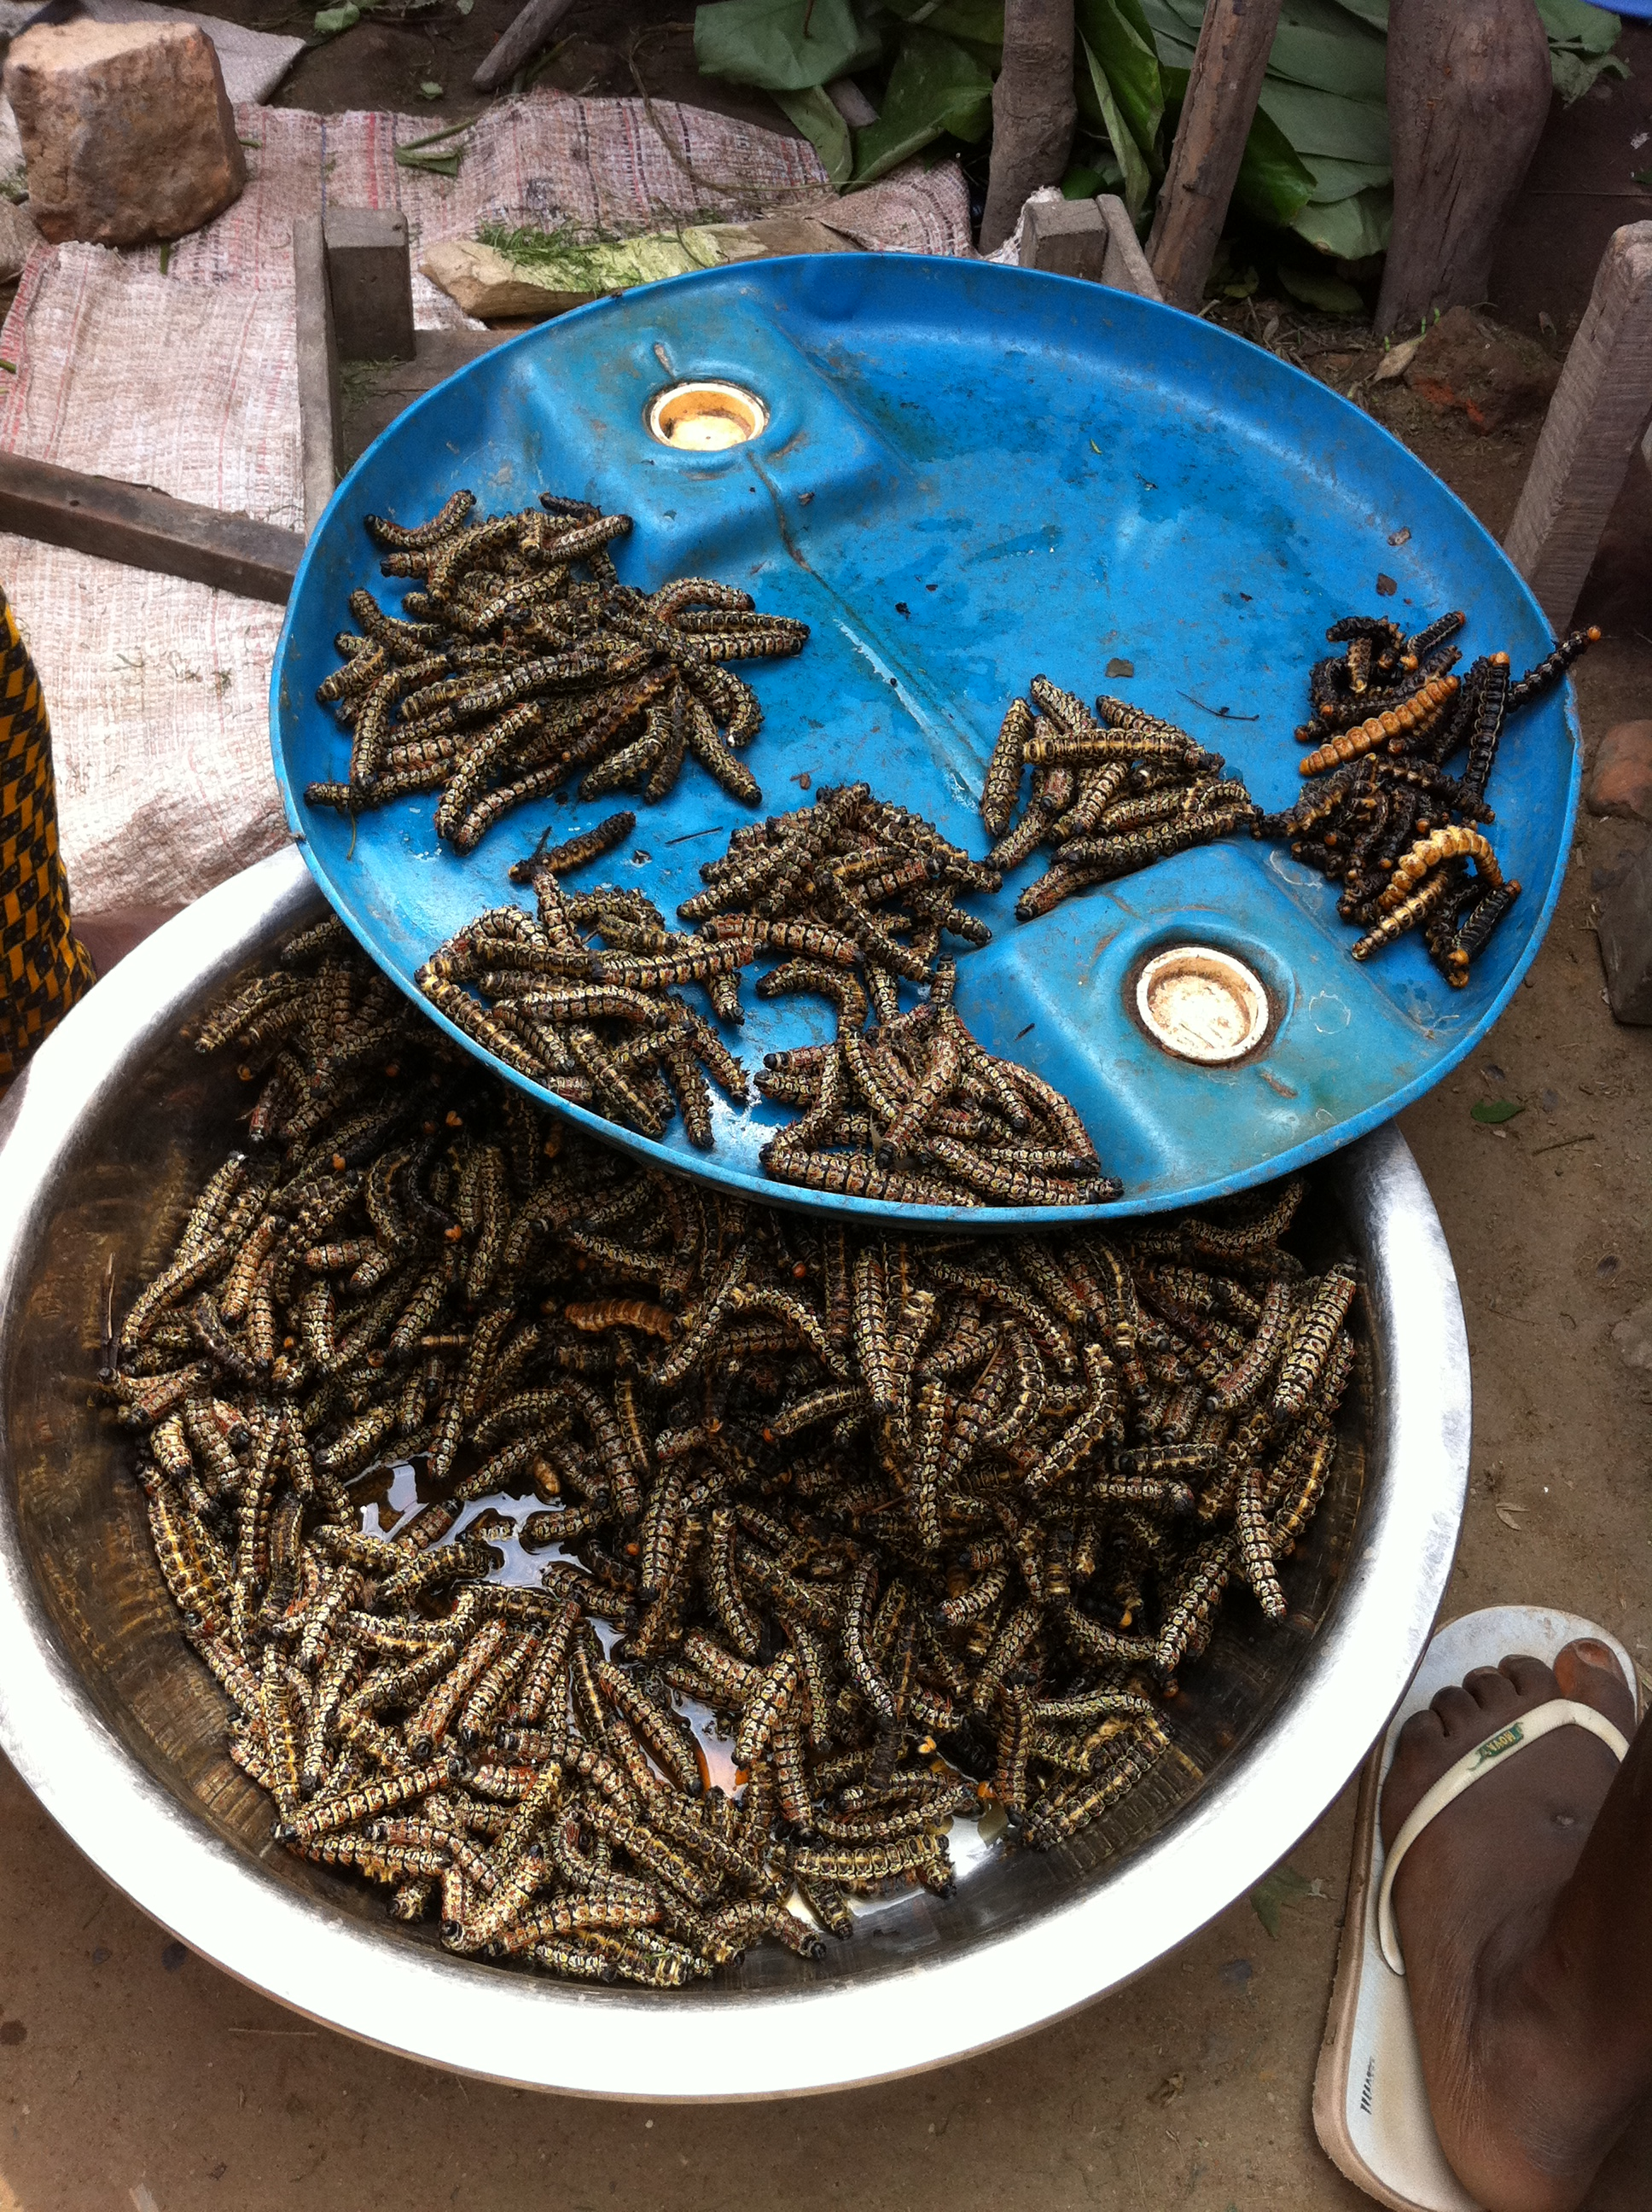 Caterpillars for sale at the meat market